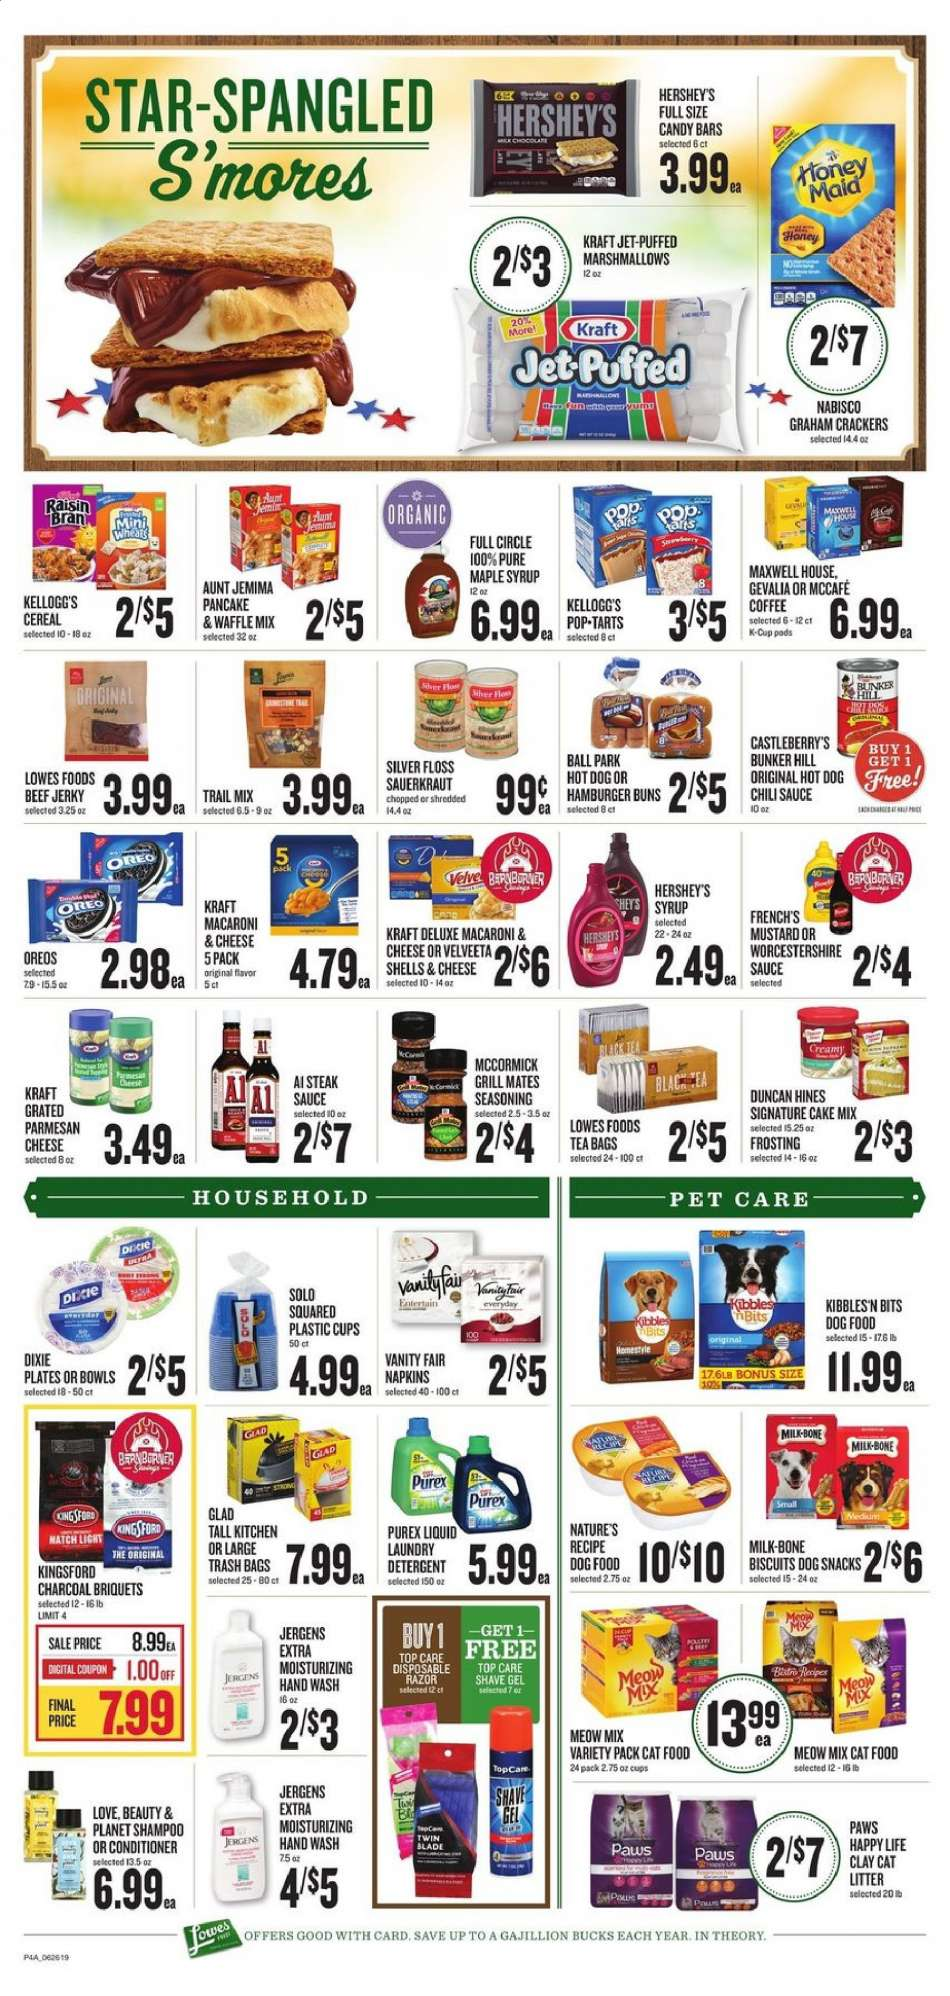 Lowes Foods flyer 06 26 2019 - 07 02 2019 | Weekly-ads us